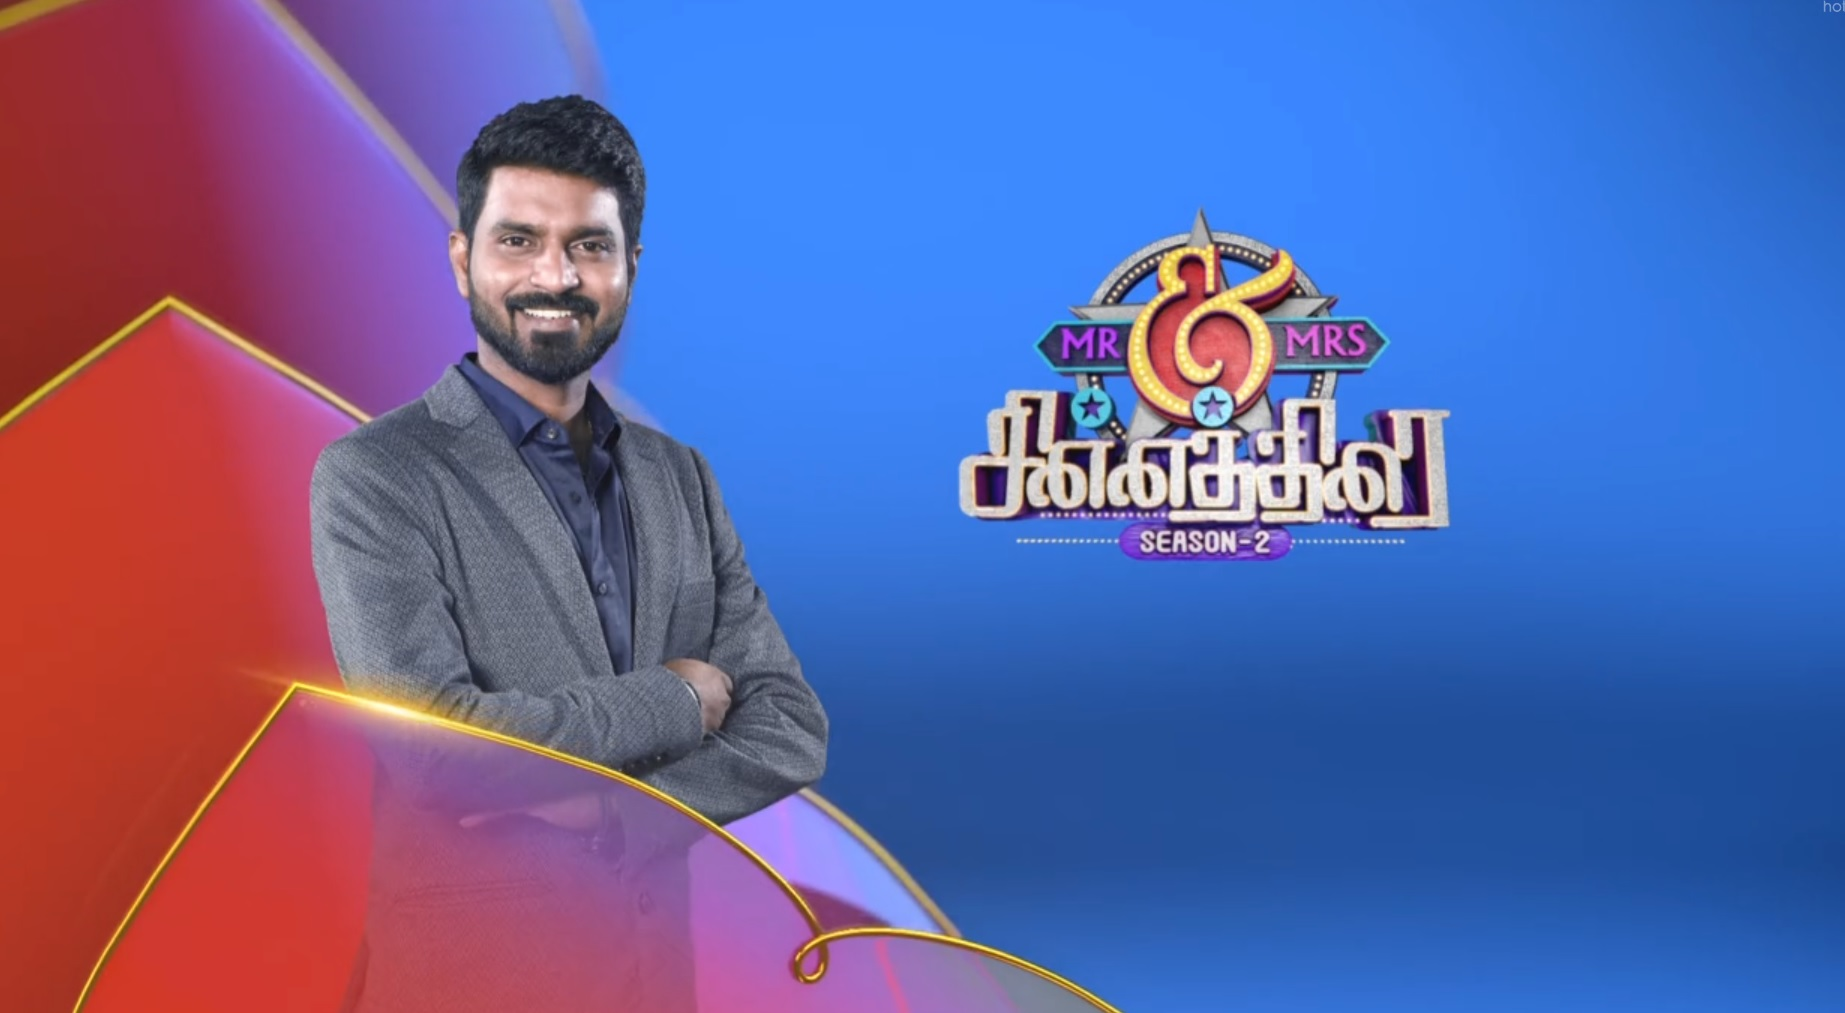 20-09-2020 - Mr & Mrs Chinnathirai 2- Vijay tv Shows